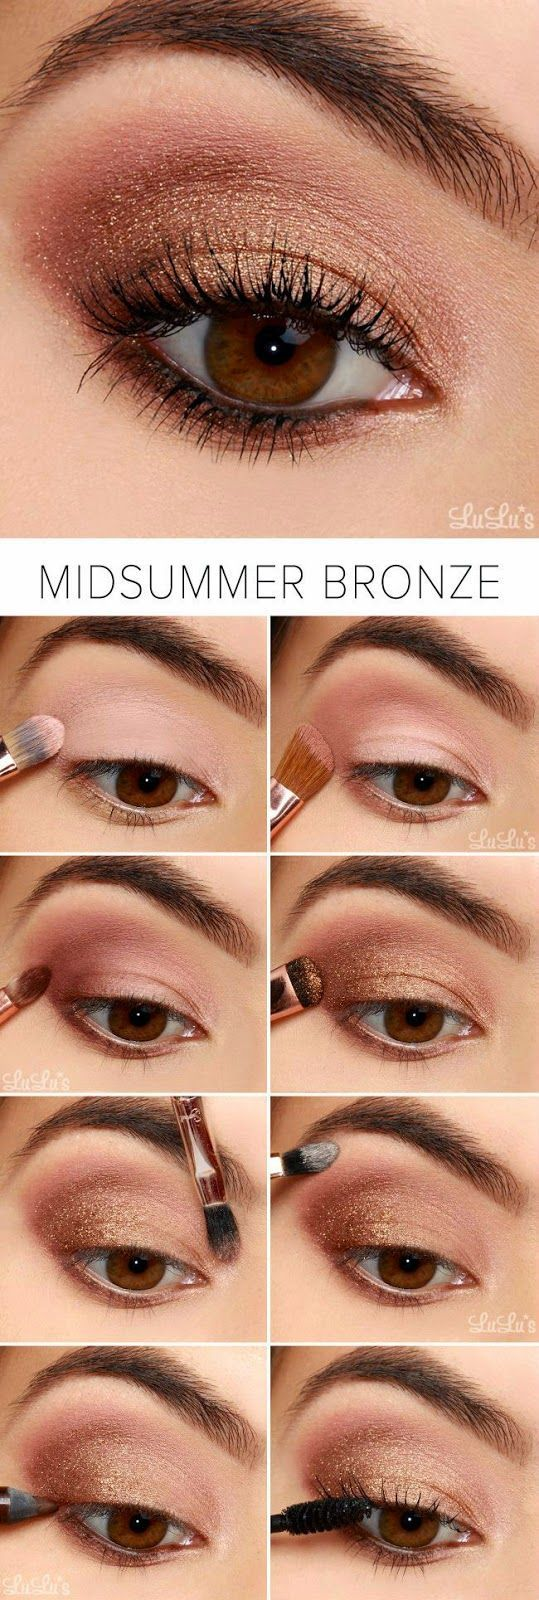 Are You Ready For A Beach Party? No, You Are Not Till You Don`t See These Awesome Makeup Ideas!